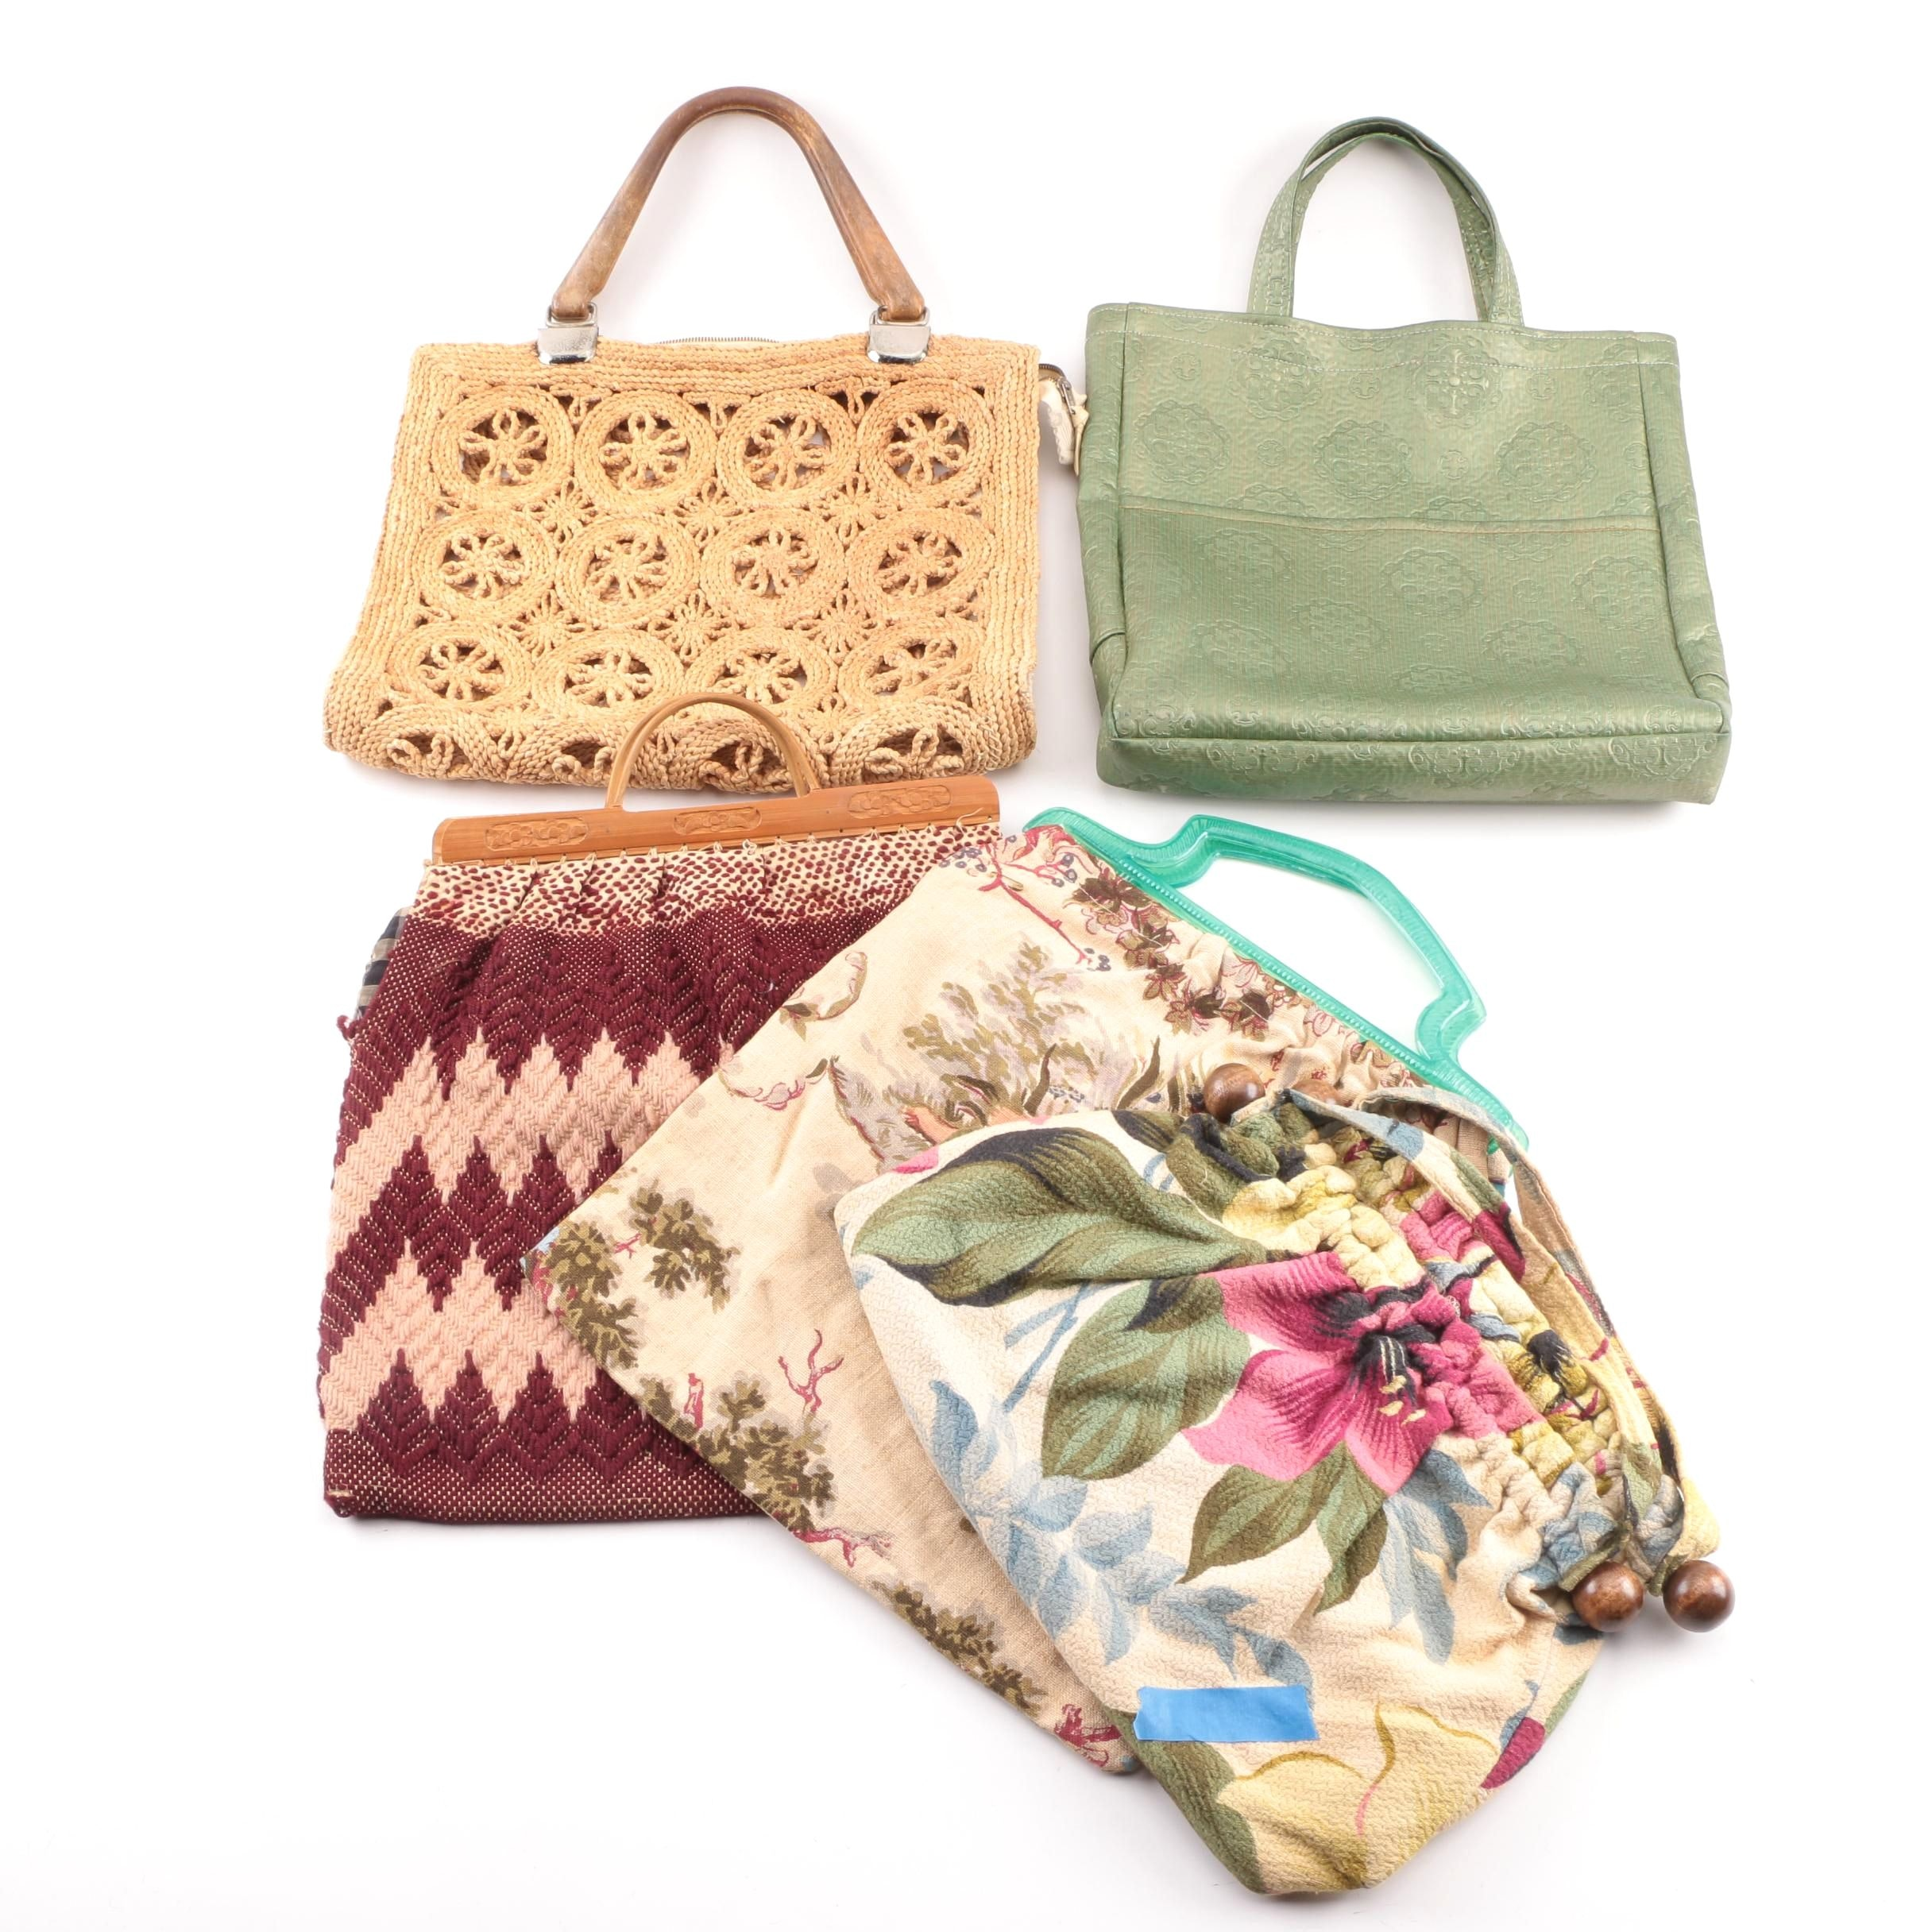 Vintage Woven Straw, Fabric and Vinyl Totes